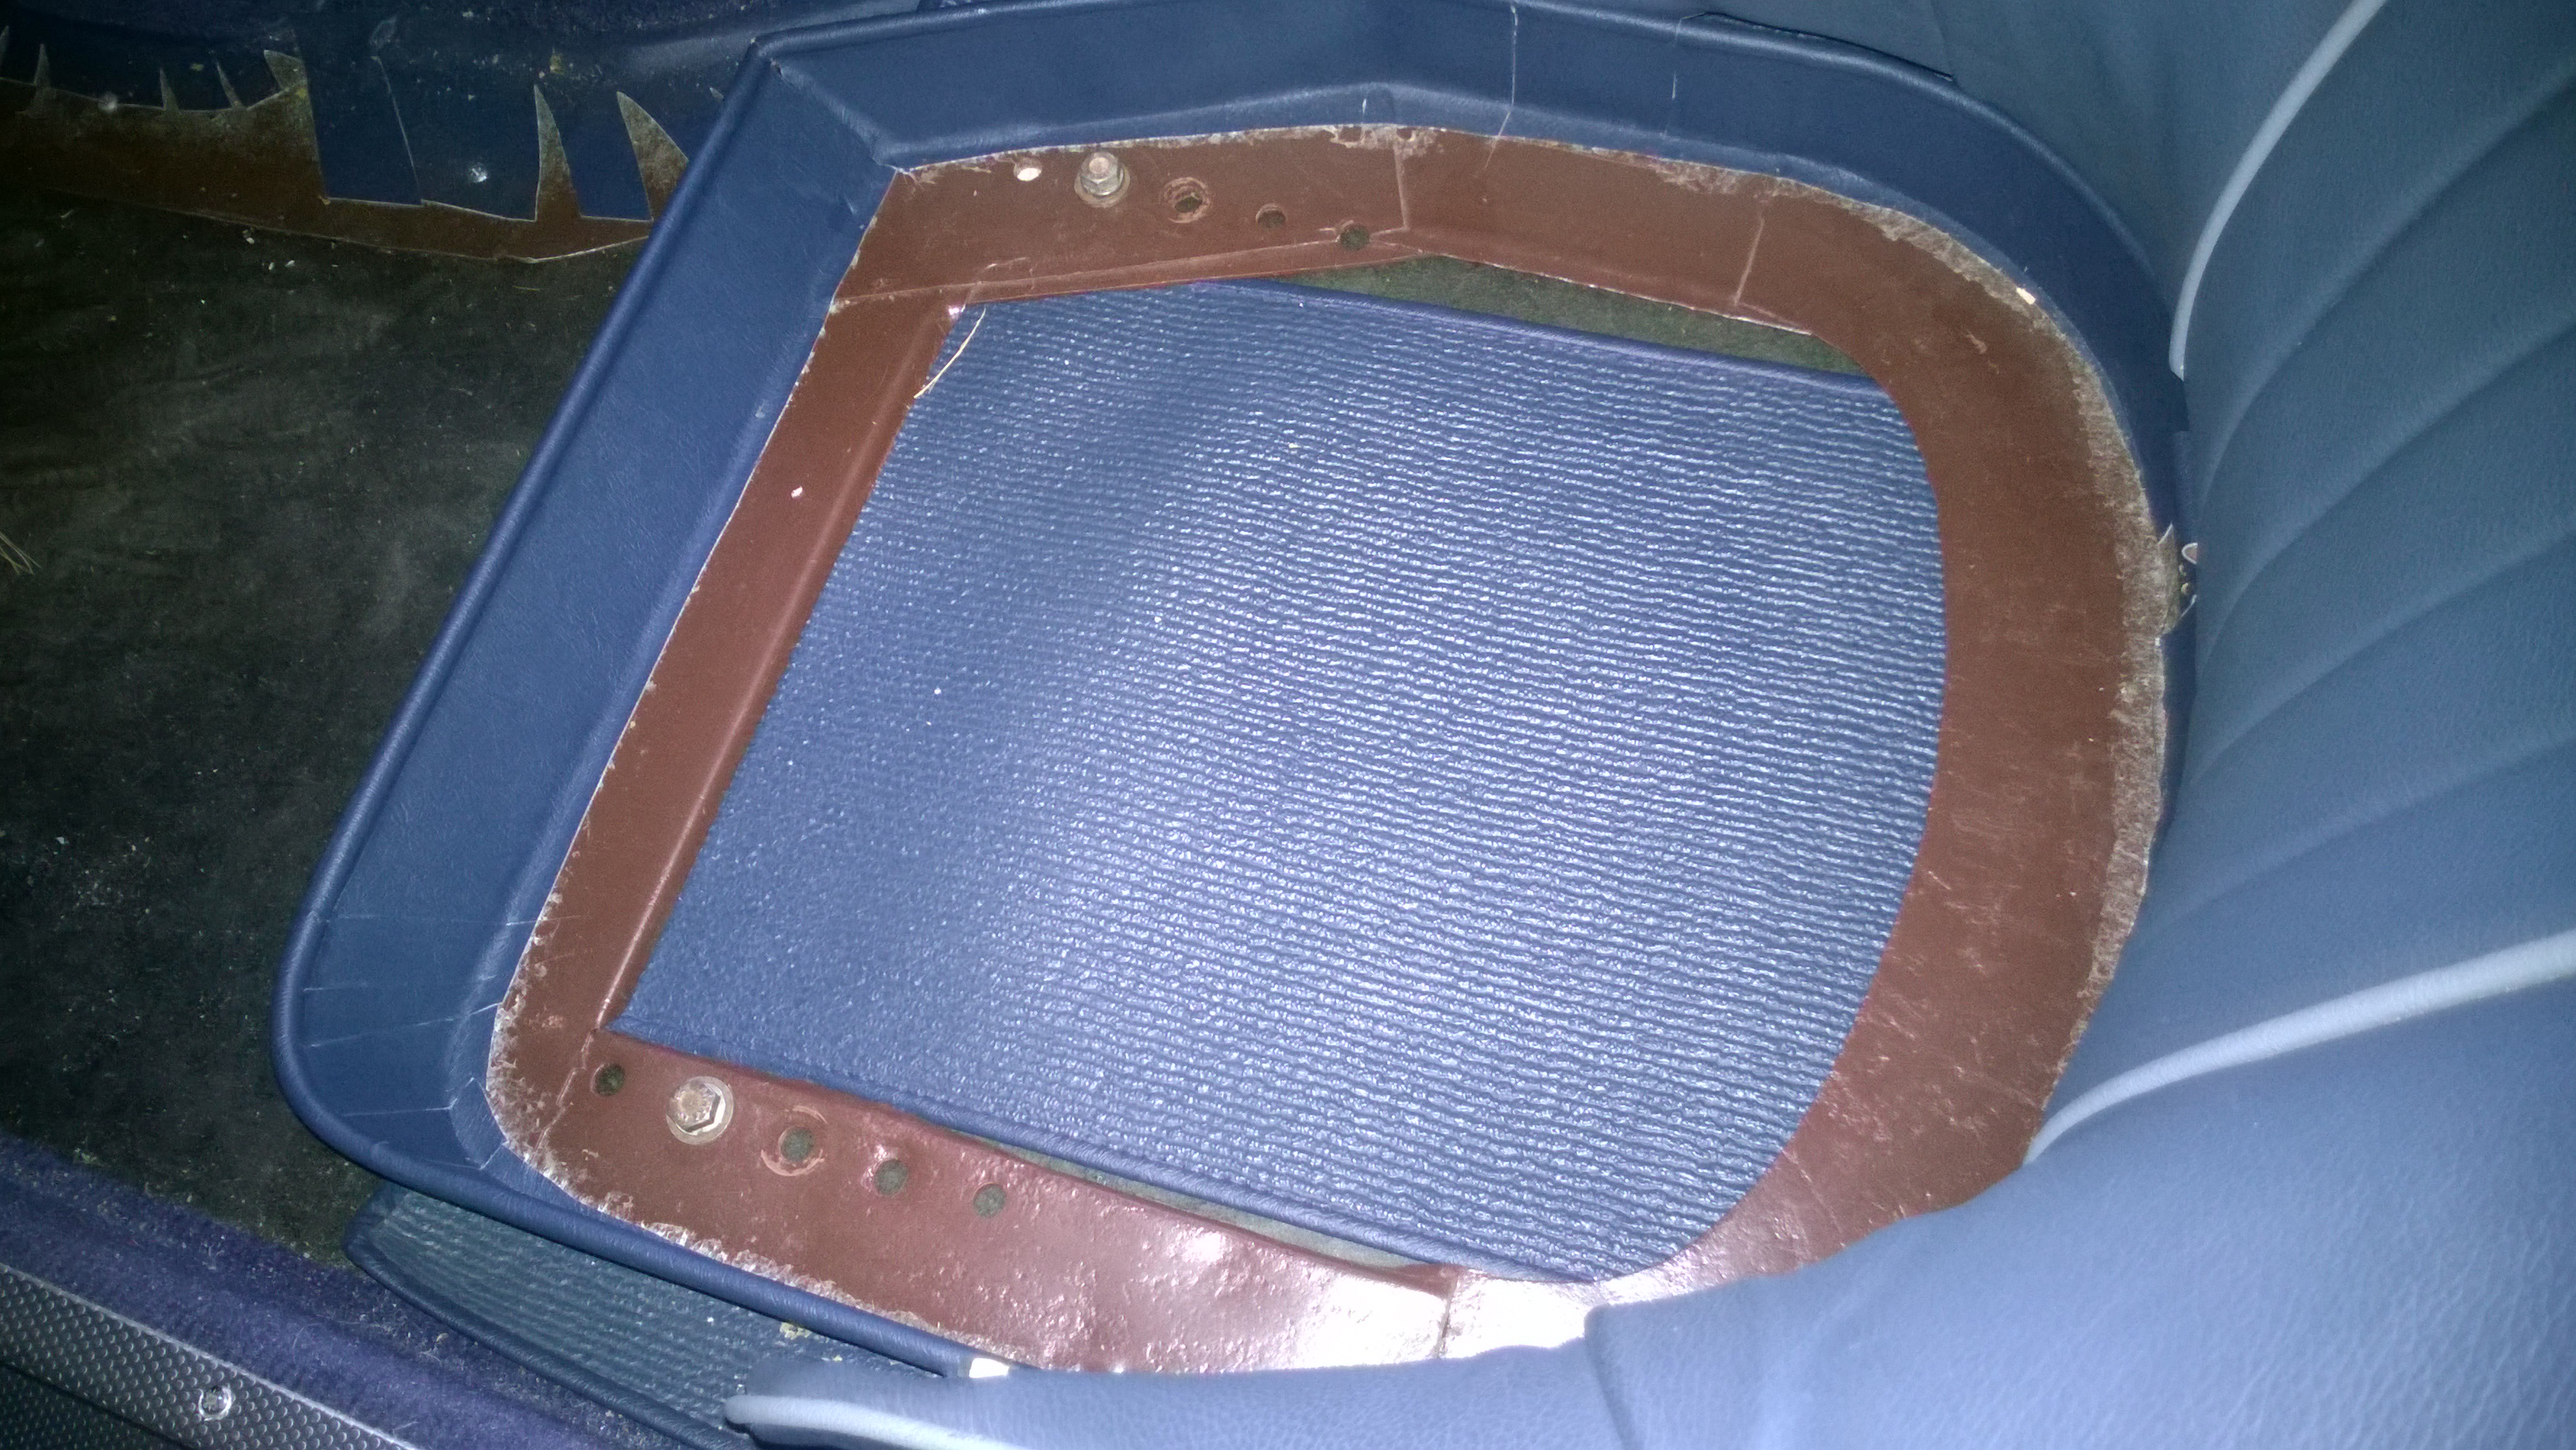 """The """"High Tech"""" Seat Adjustment System on #174's Driver's Seat"""